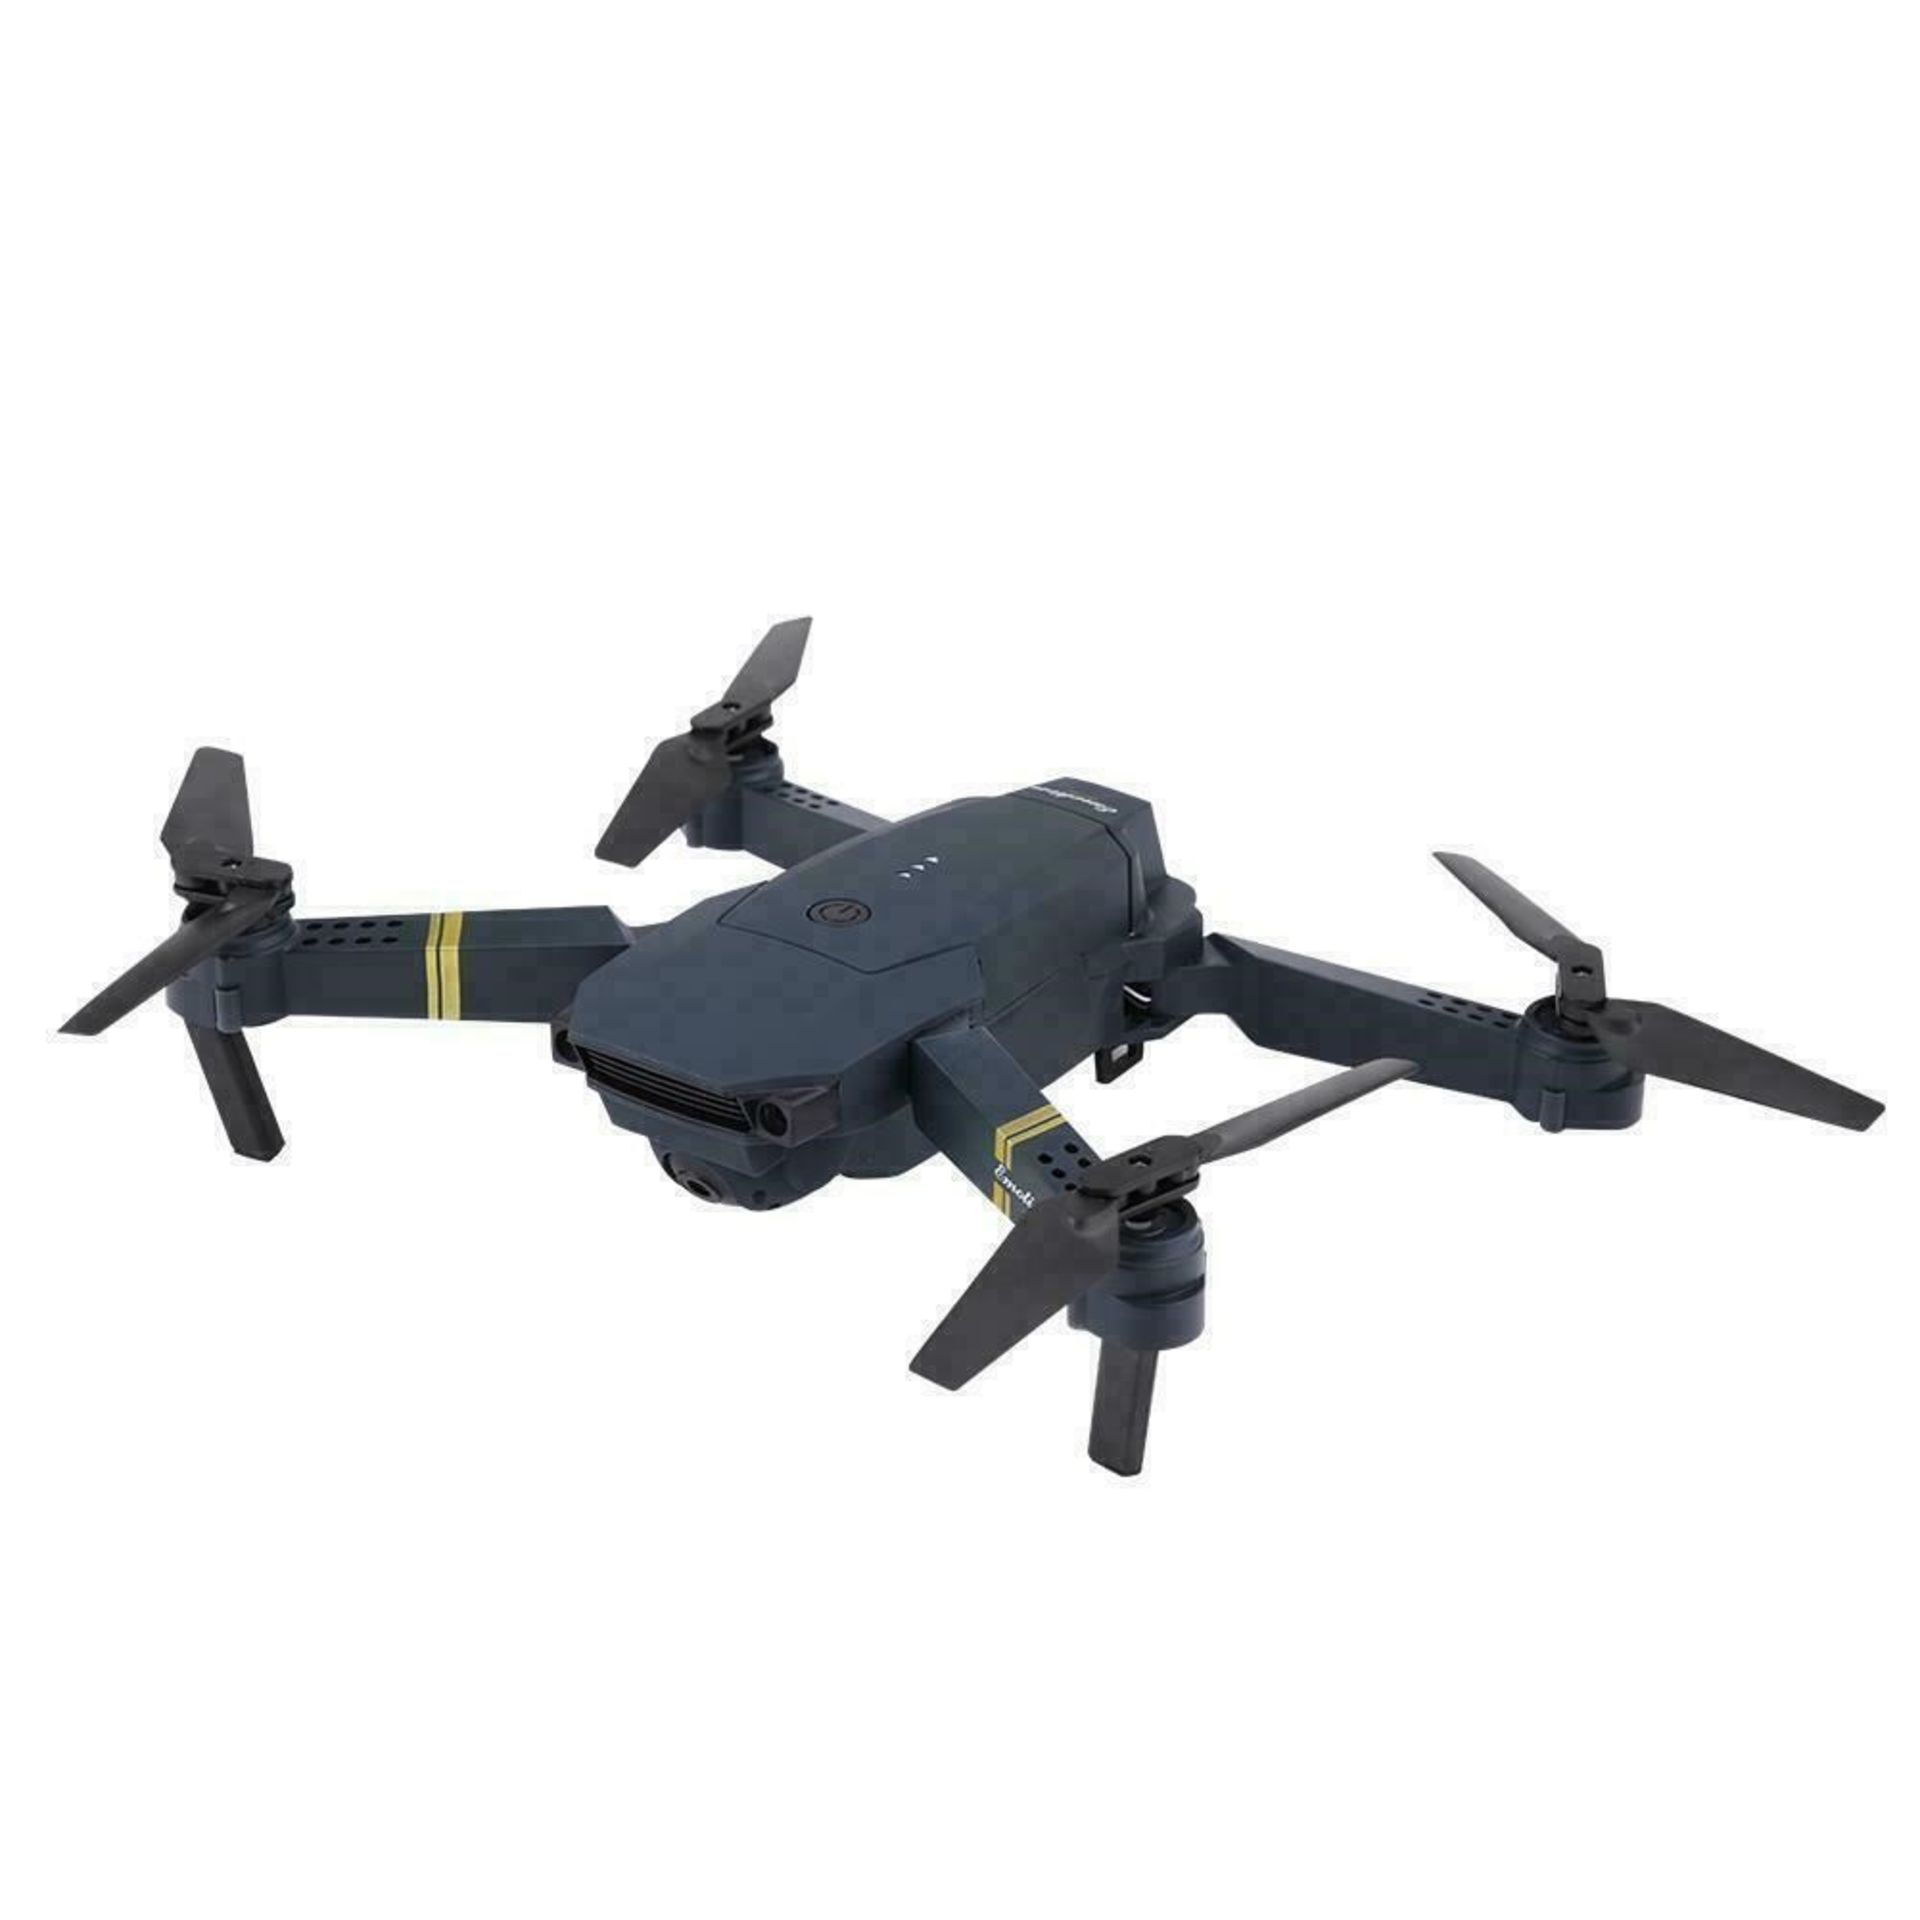 NEW & UNUSED DRONE X PRO WIFI FPV 1080P HD CAMERA FOLDABLE RC QUADCOPTER + BAG *PLUS VAT*